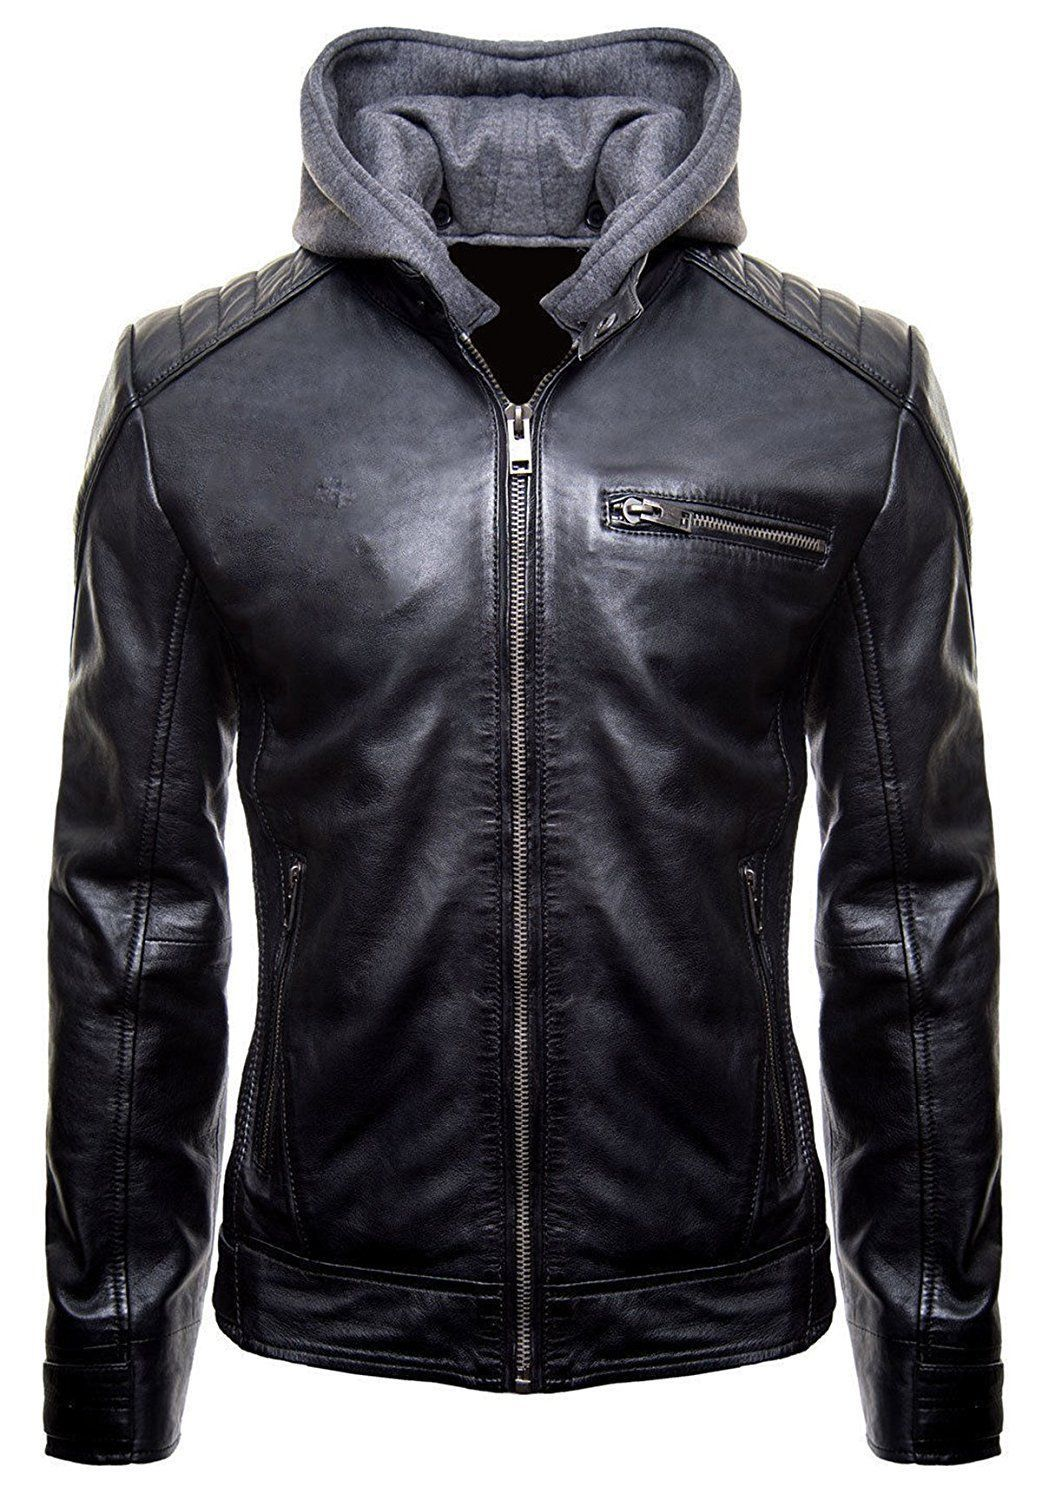 Batman Gotham Jacket Motorcycle Brando Biker Leather Bomber Detach Hoodie Jacket